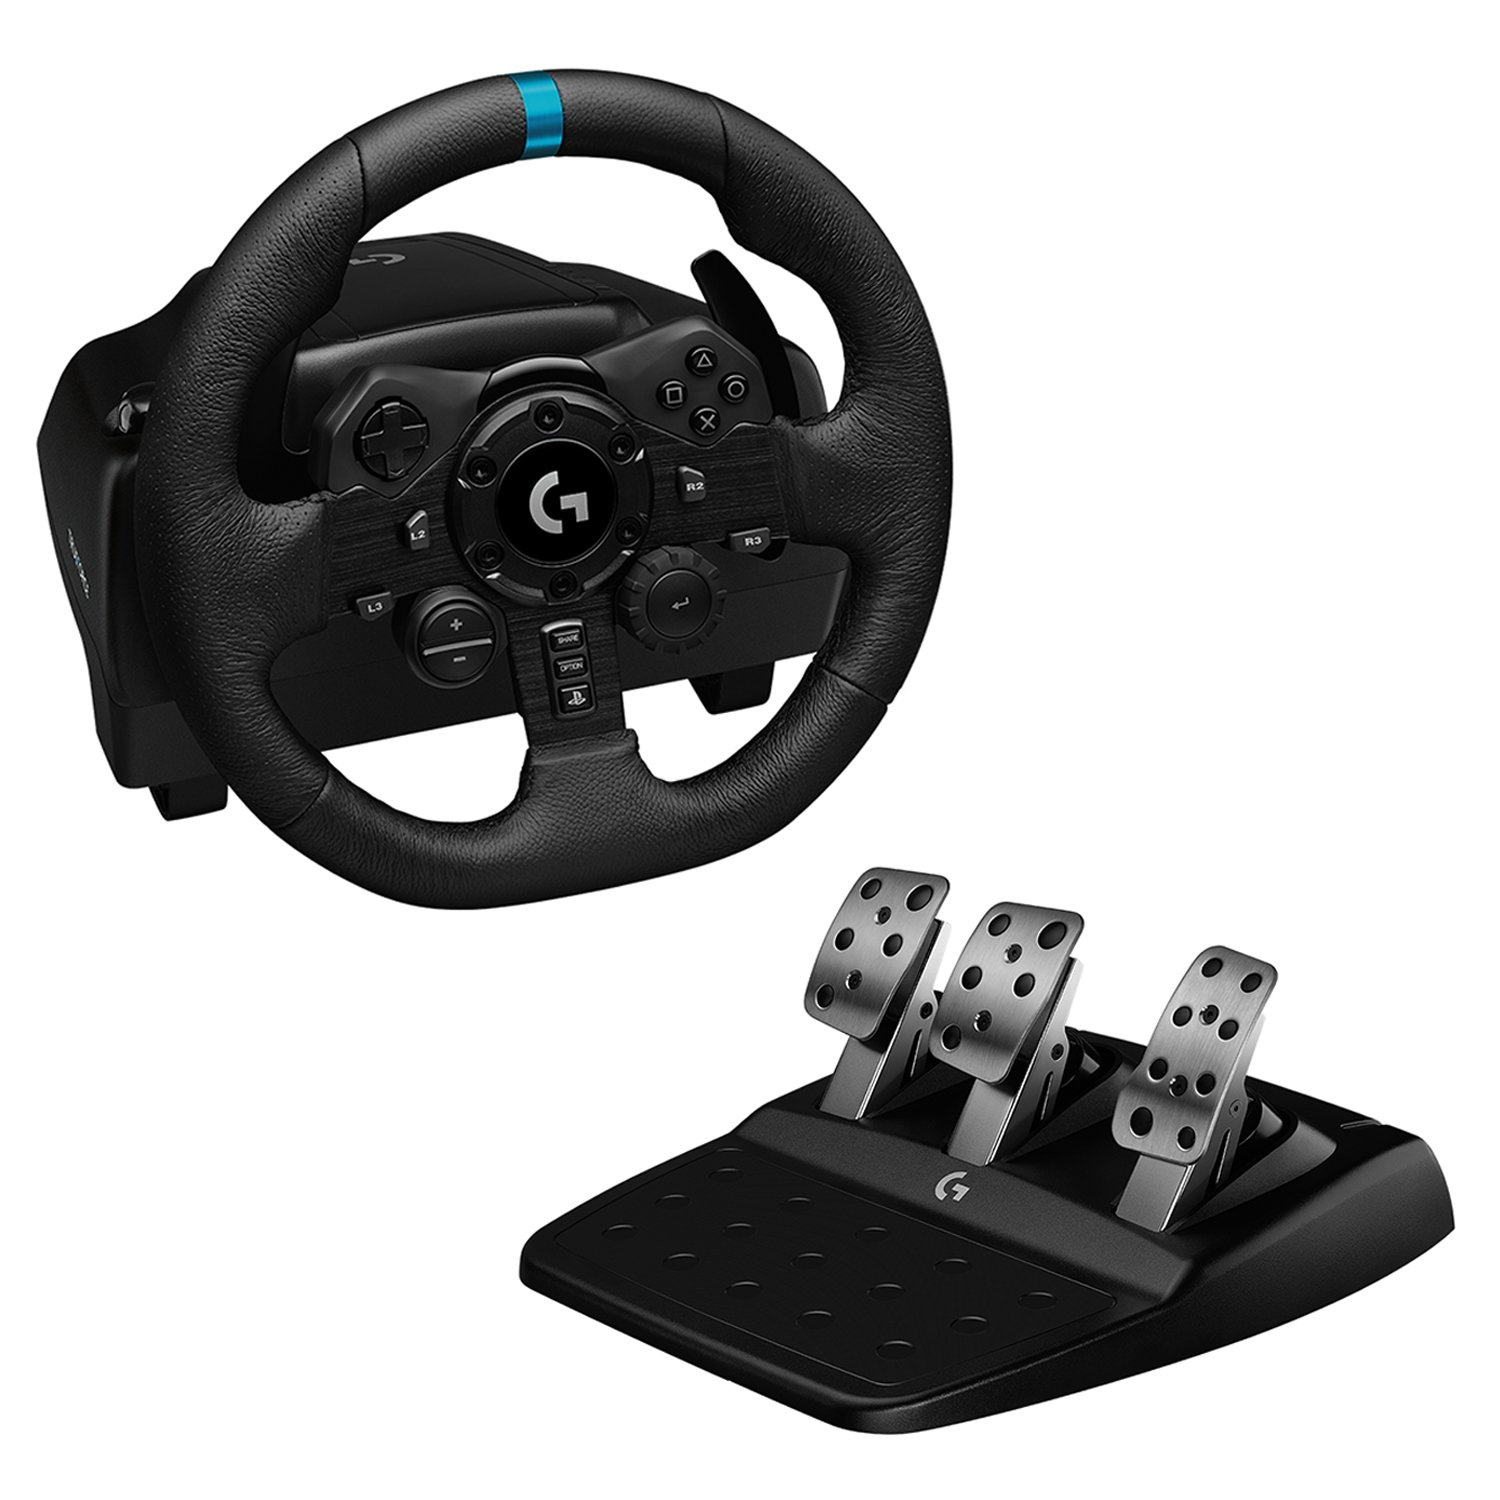 Logitech - G923 Racing Wheel and Pedals for PS5, PS4 and PC - USB